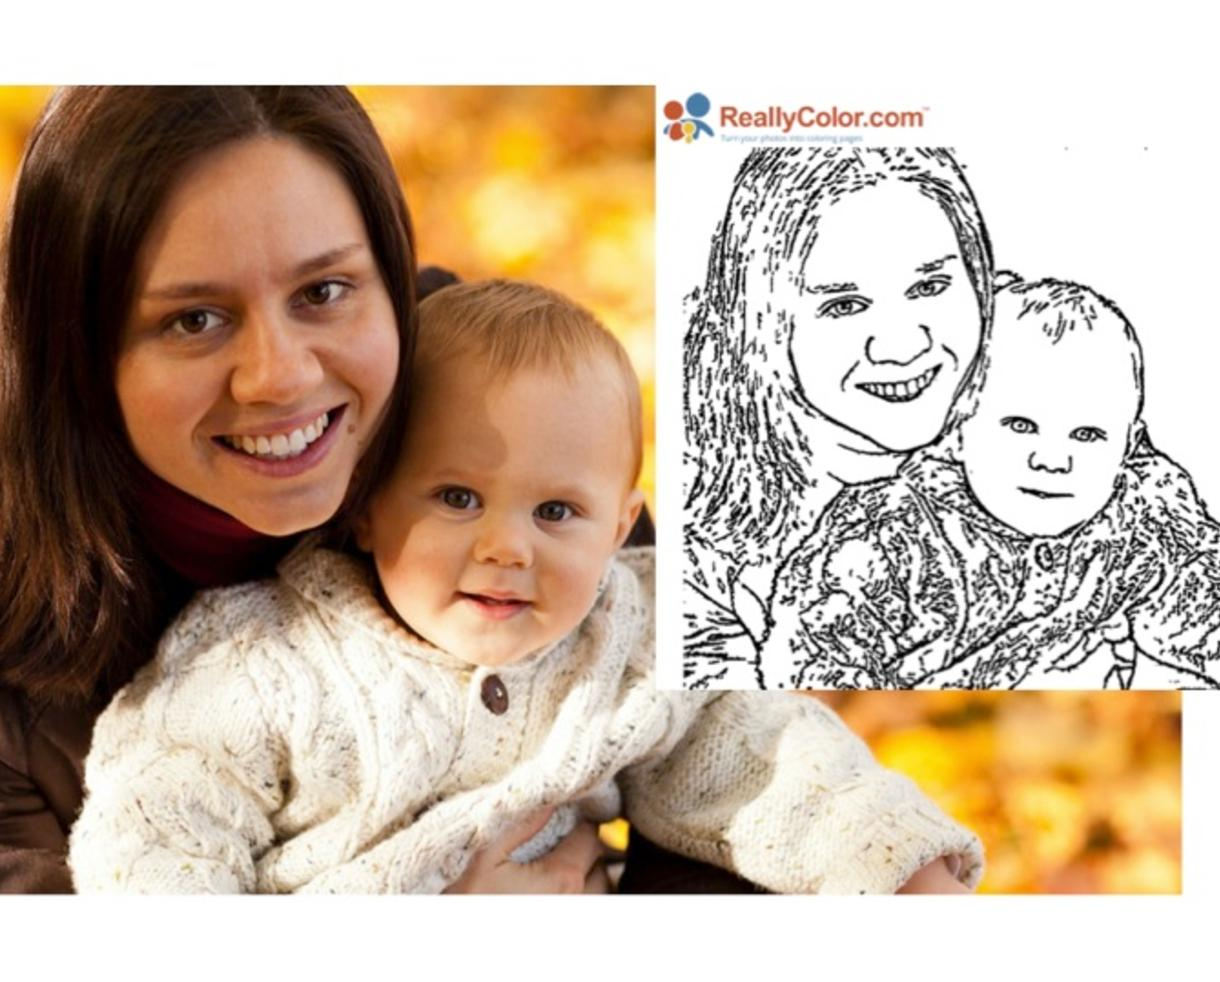 Deal Turn Your Photos Into Coloring Pages At Reallycolor Com 5